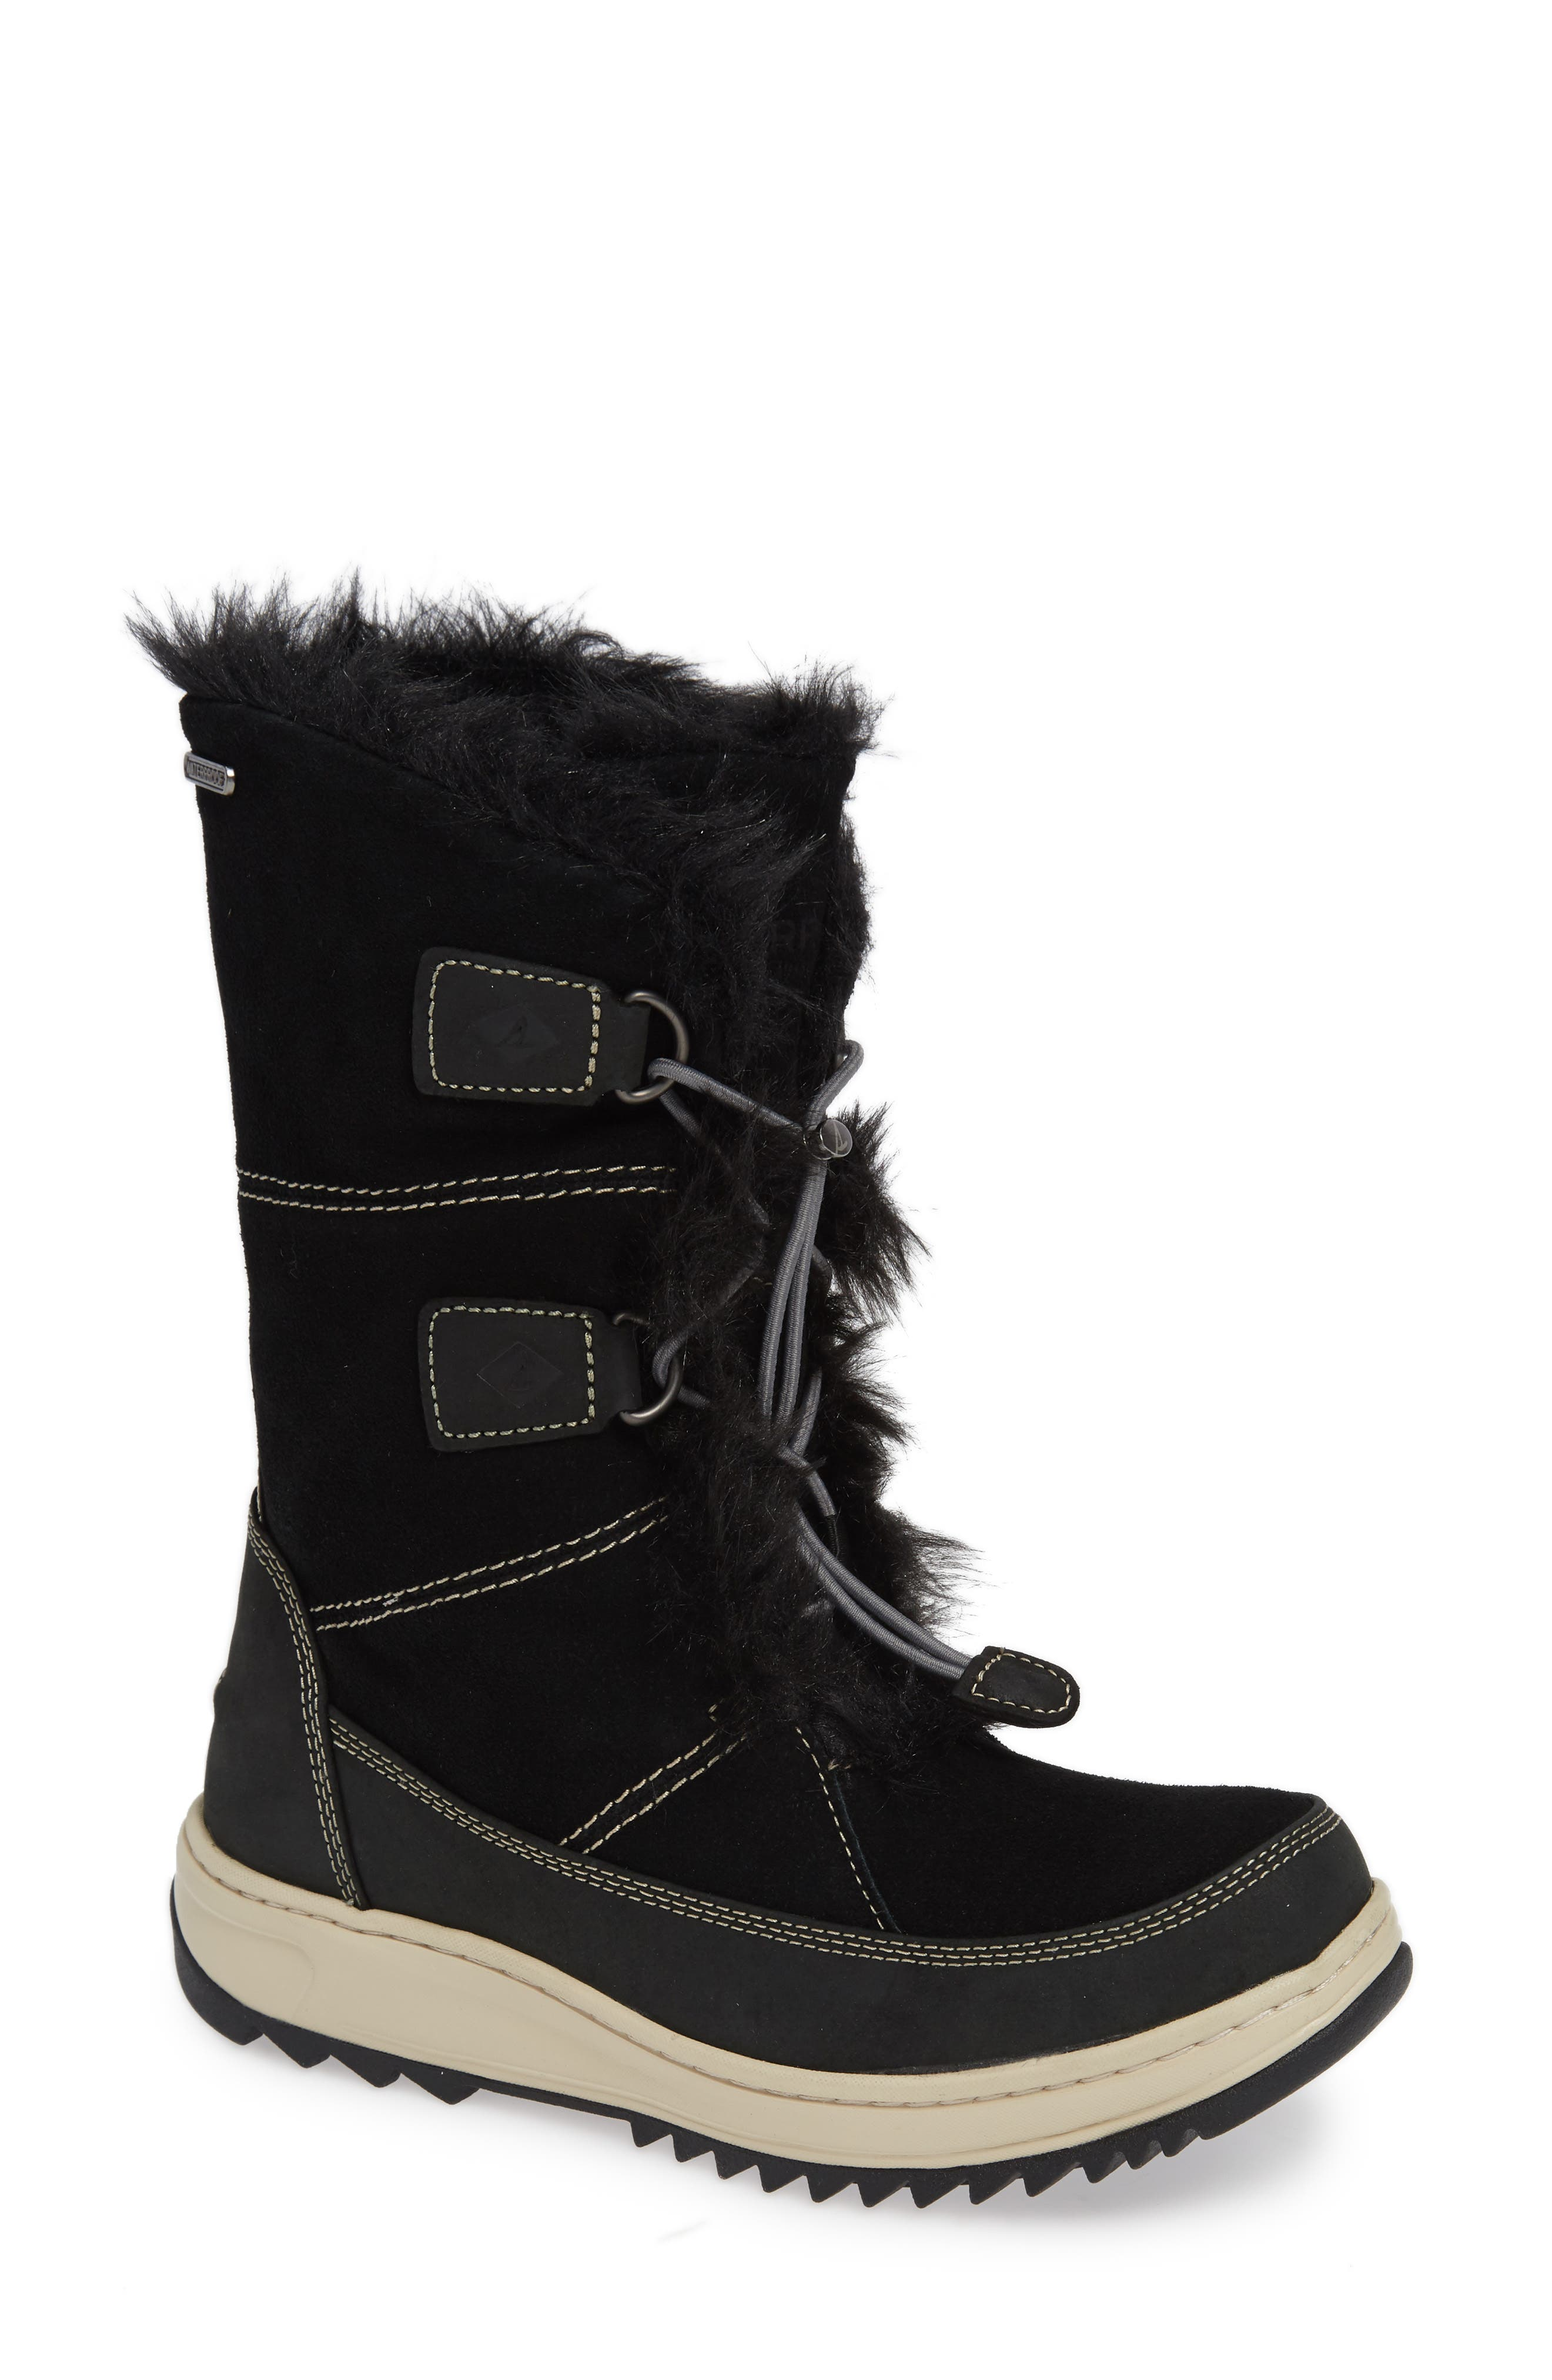 SPERRY,                             Powder Valley Vibram<sup>®</sup> Arctic Grip Waterproof Boot,                             Main thumbnail 1, color,                             001